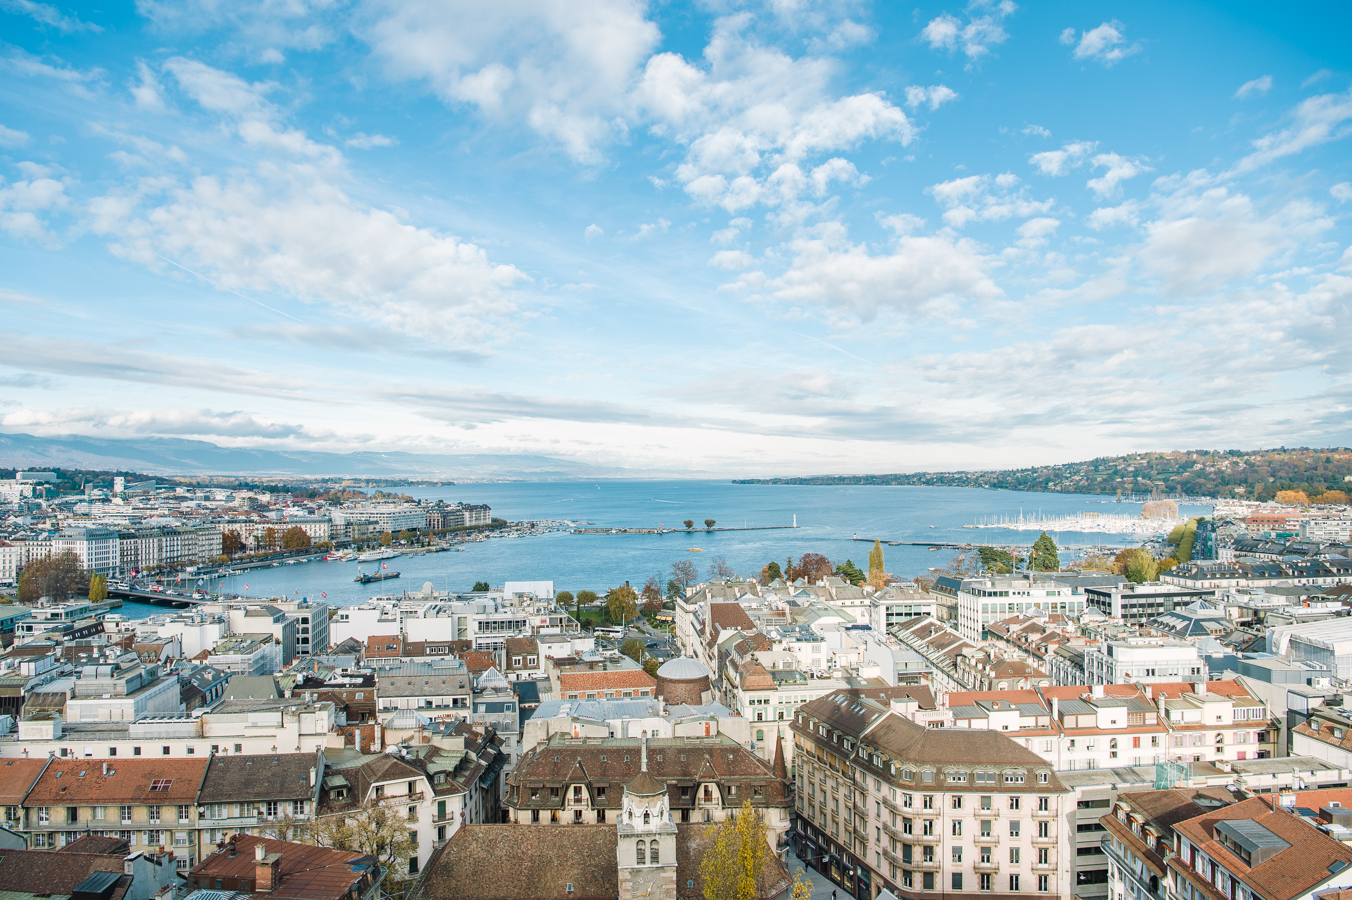 View of Geneva and the Lake of Geneva from Cathedral Saint-Pierre, Geneva, Switzerland